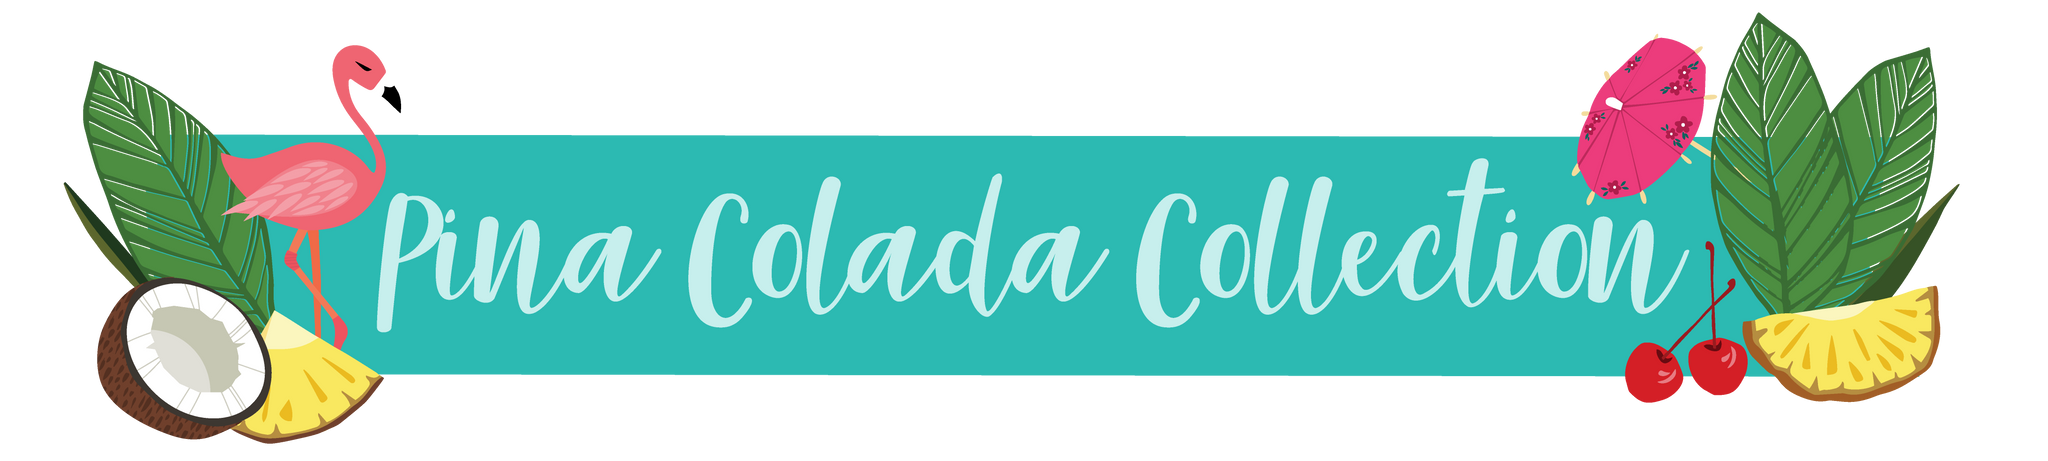 Pina Colada Collection header